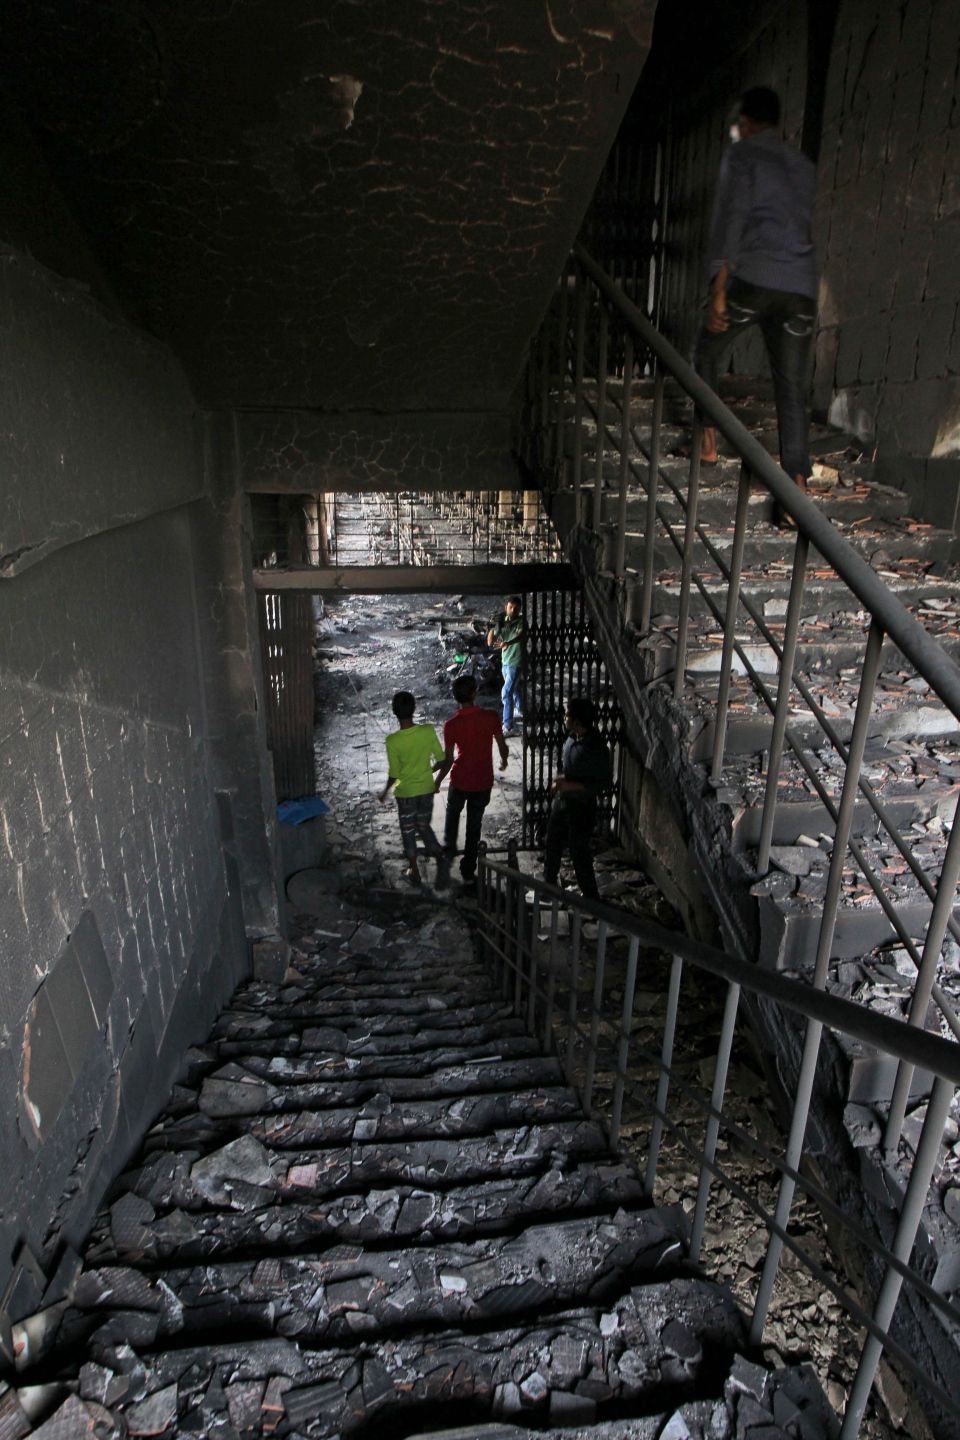 People walk inside a garment-factory where a fire killed more than 110 people Saturday on the outskirts of Dhaka, Bangladesh, Monday, Nov. 26, 2012. (AP)